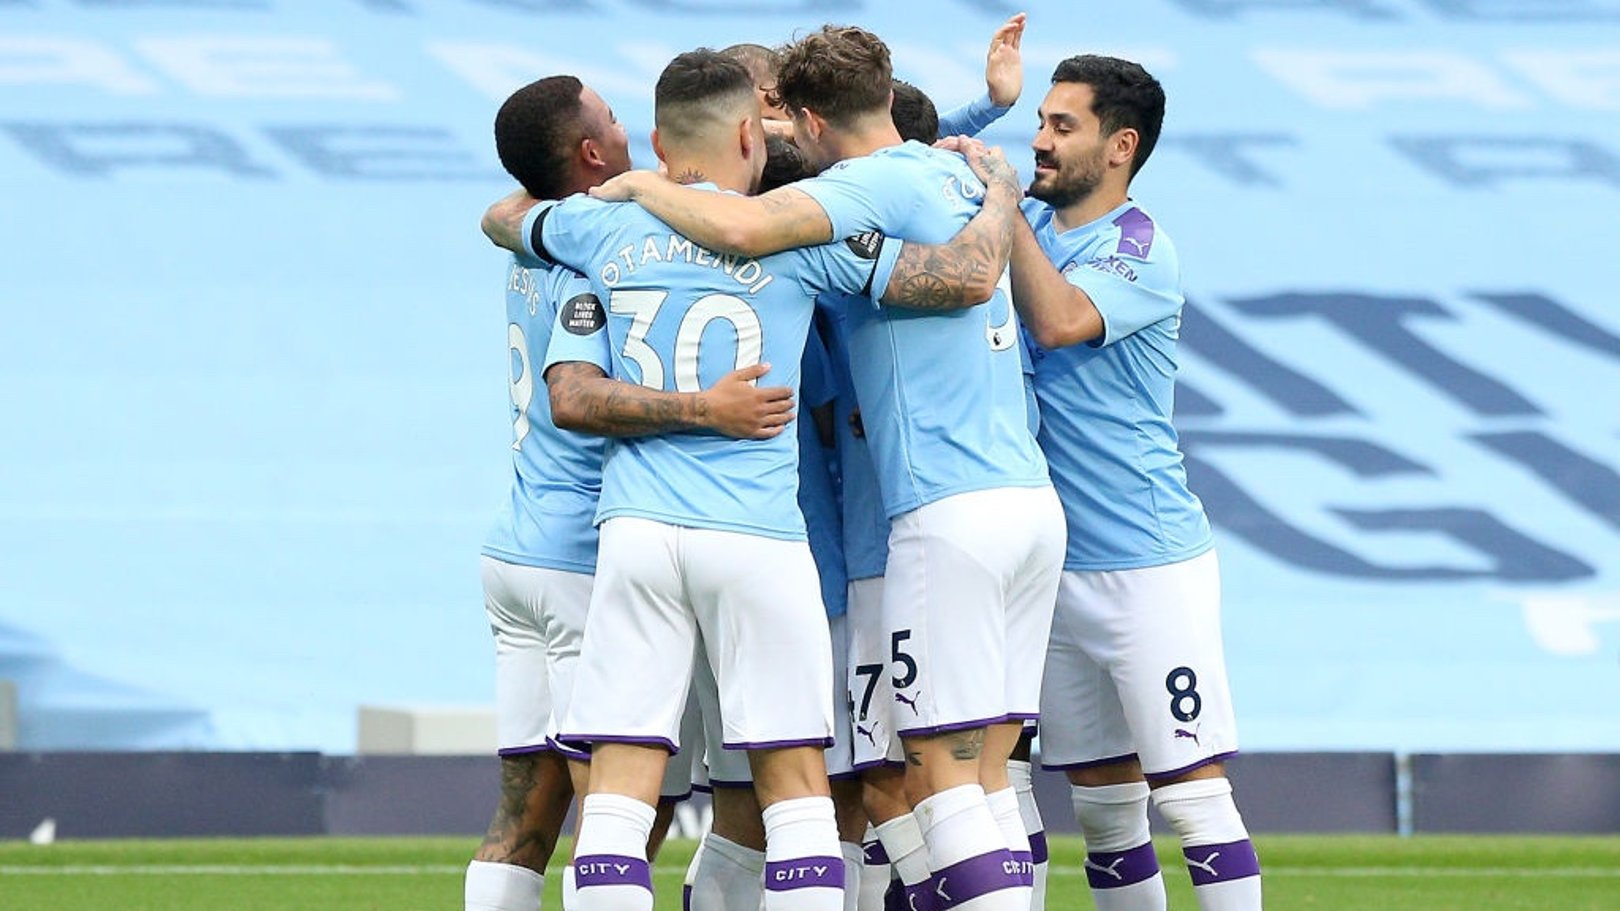 GROUP HUG: The players share the love after Silva's early goal.